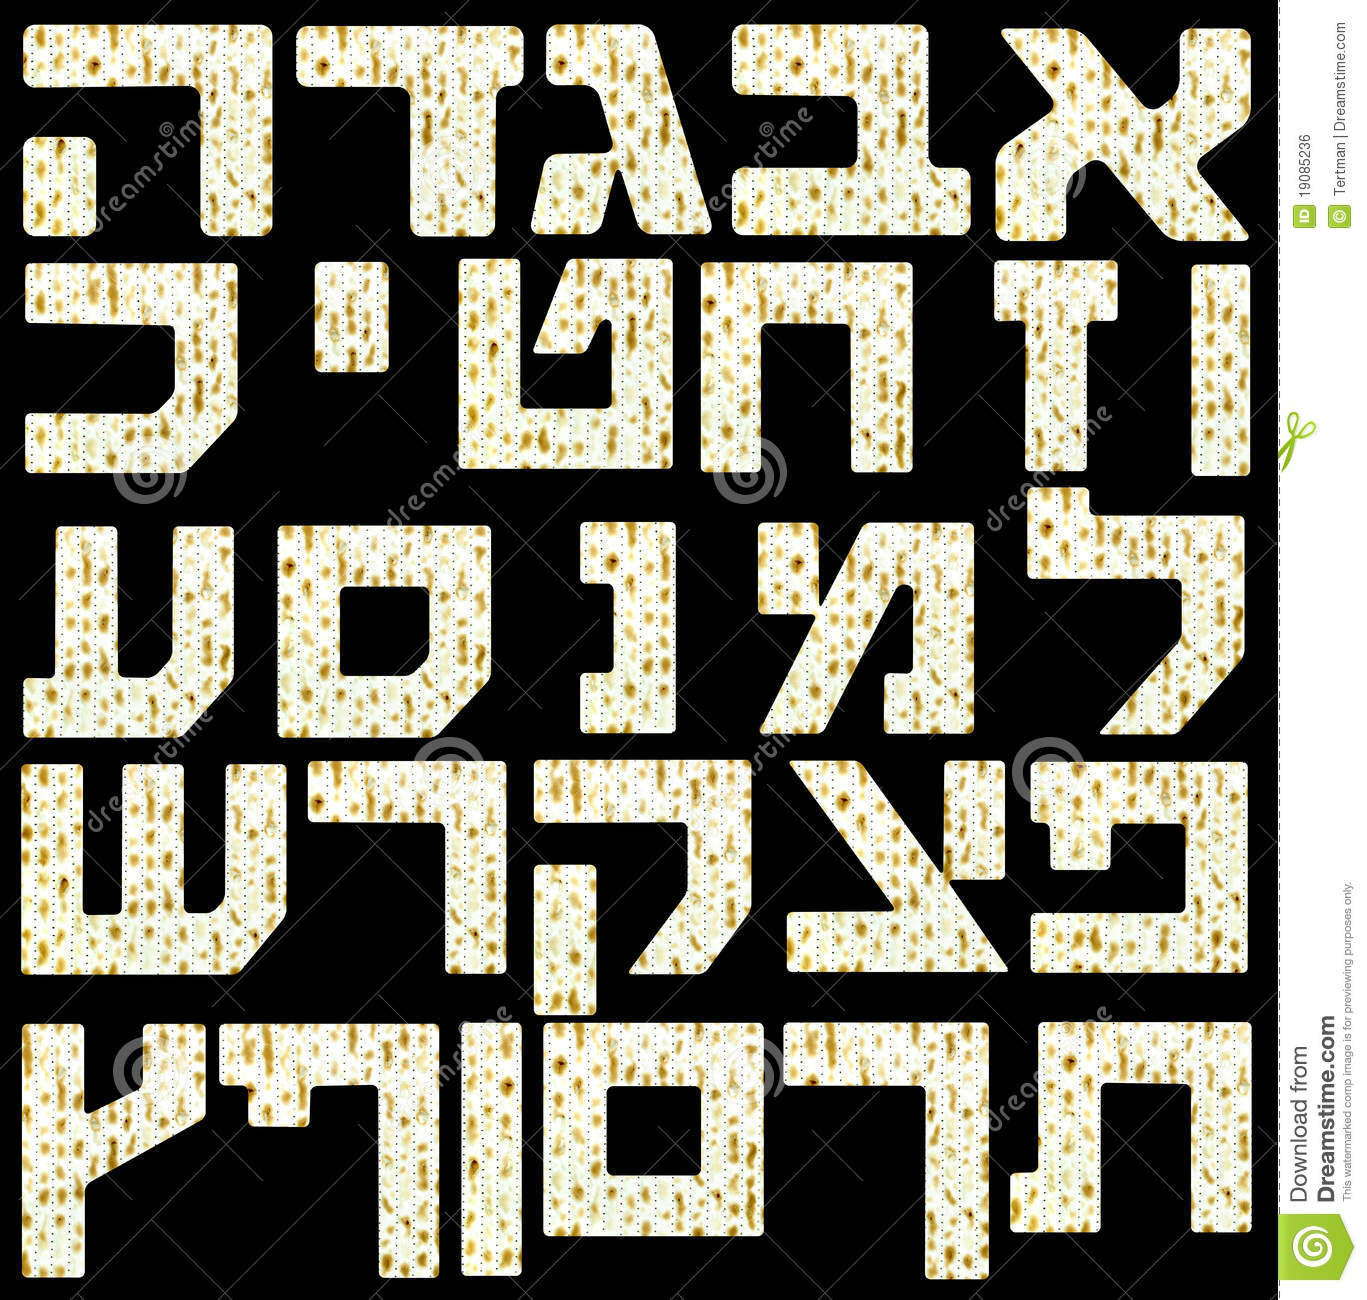 hebrew alphabet letters with a matzo flatbread